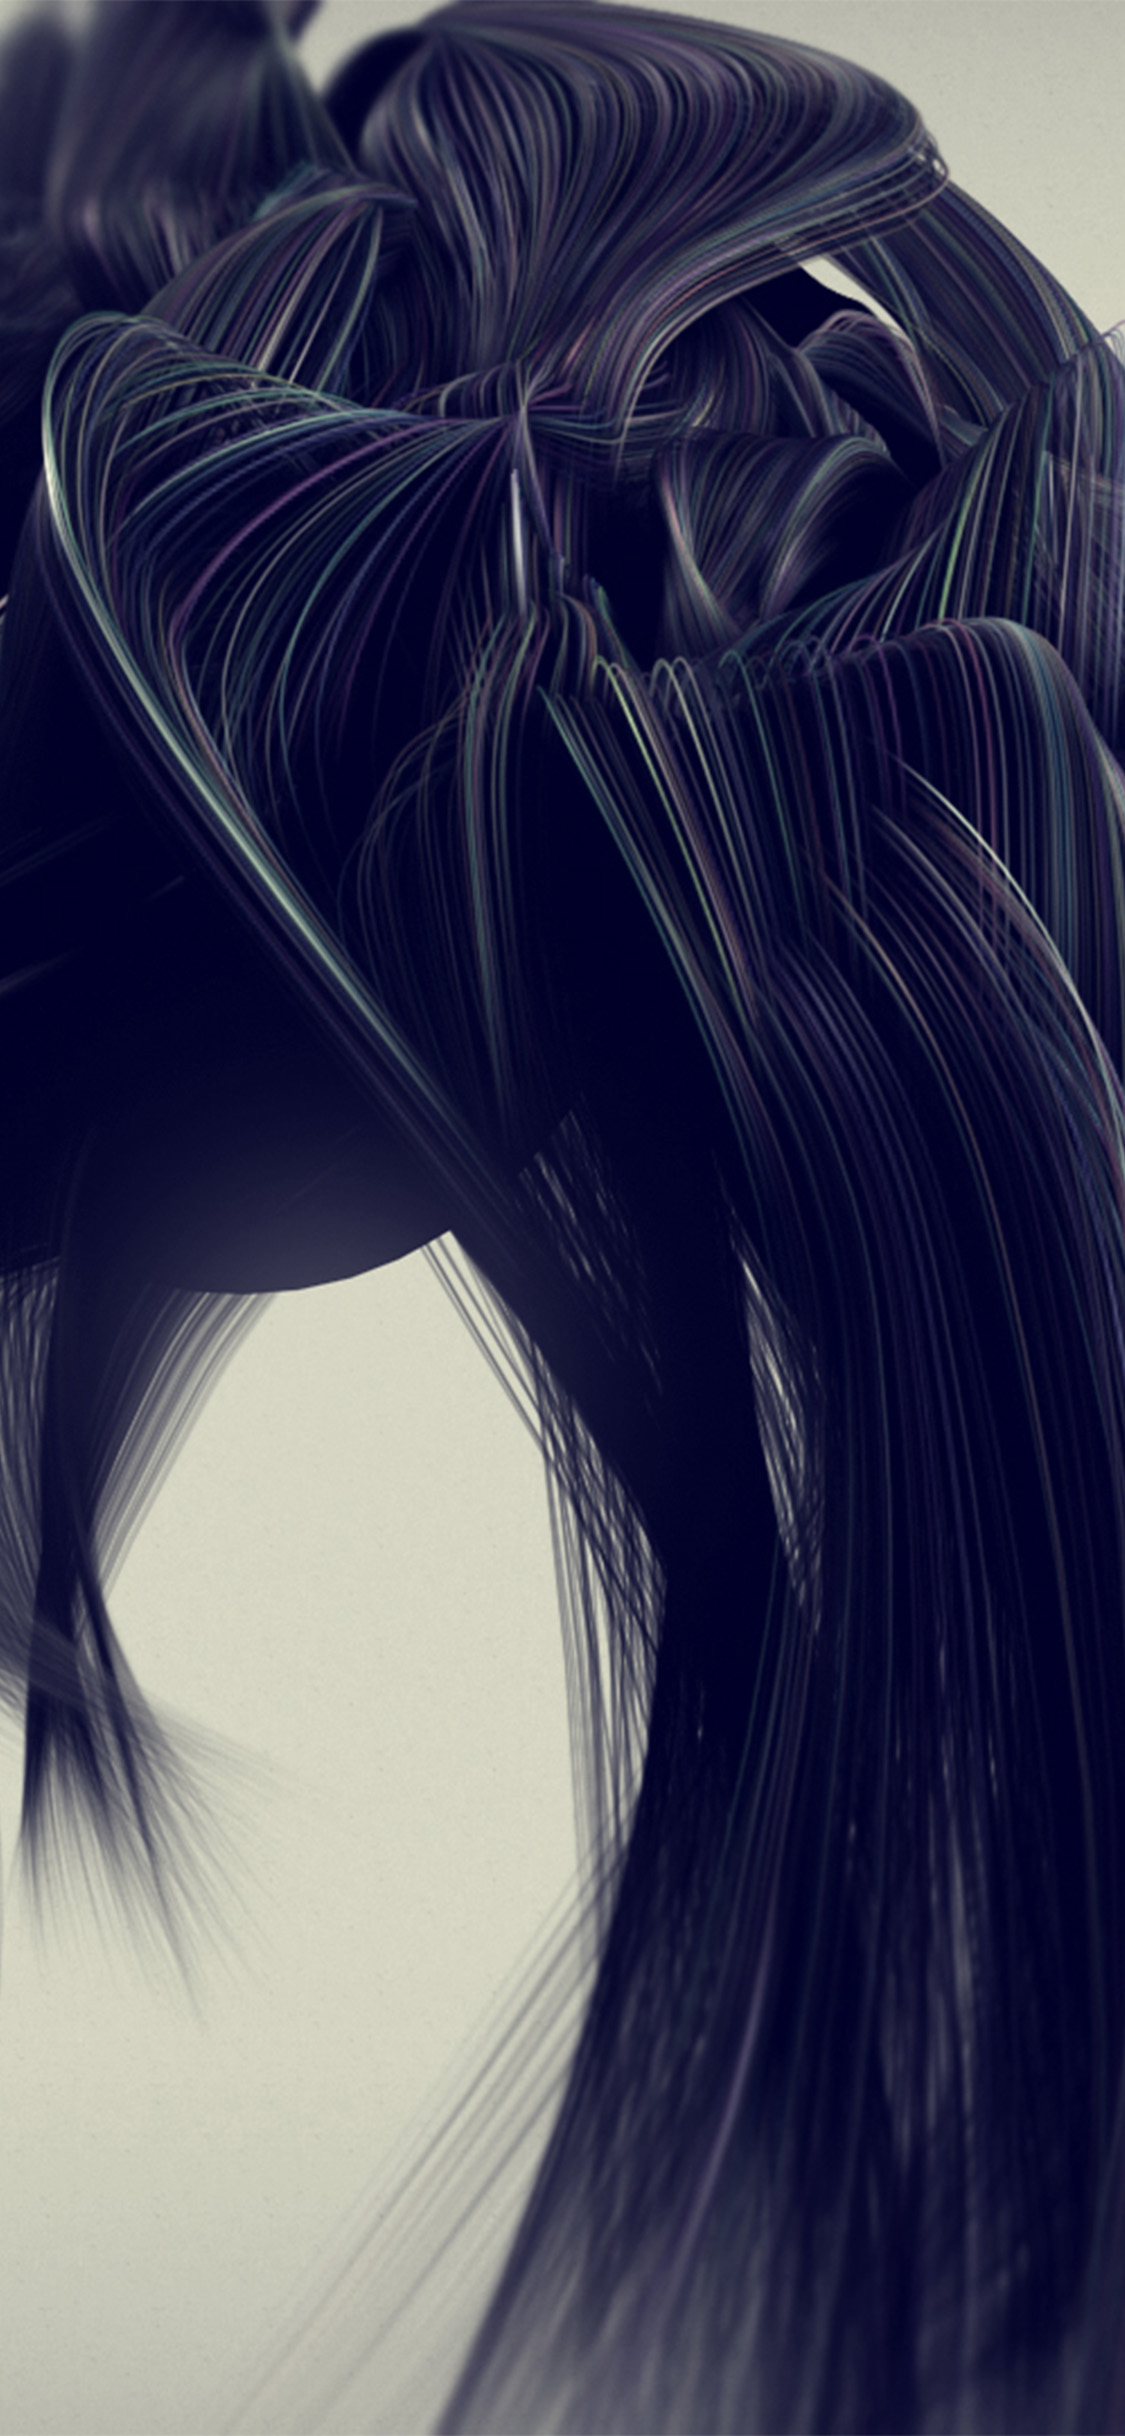 Digital Art Wallpapers For Iphone And Ipad